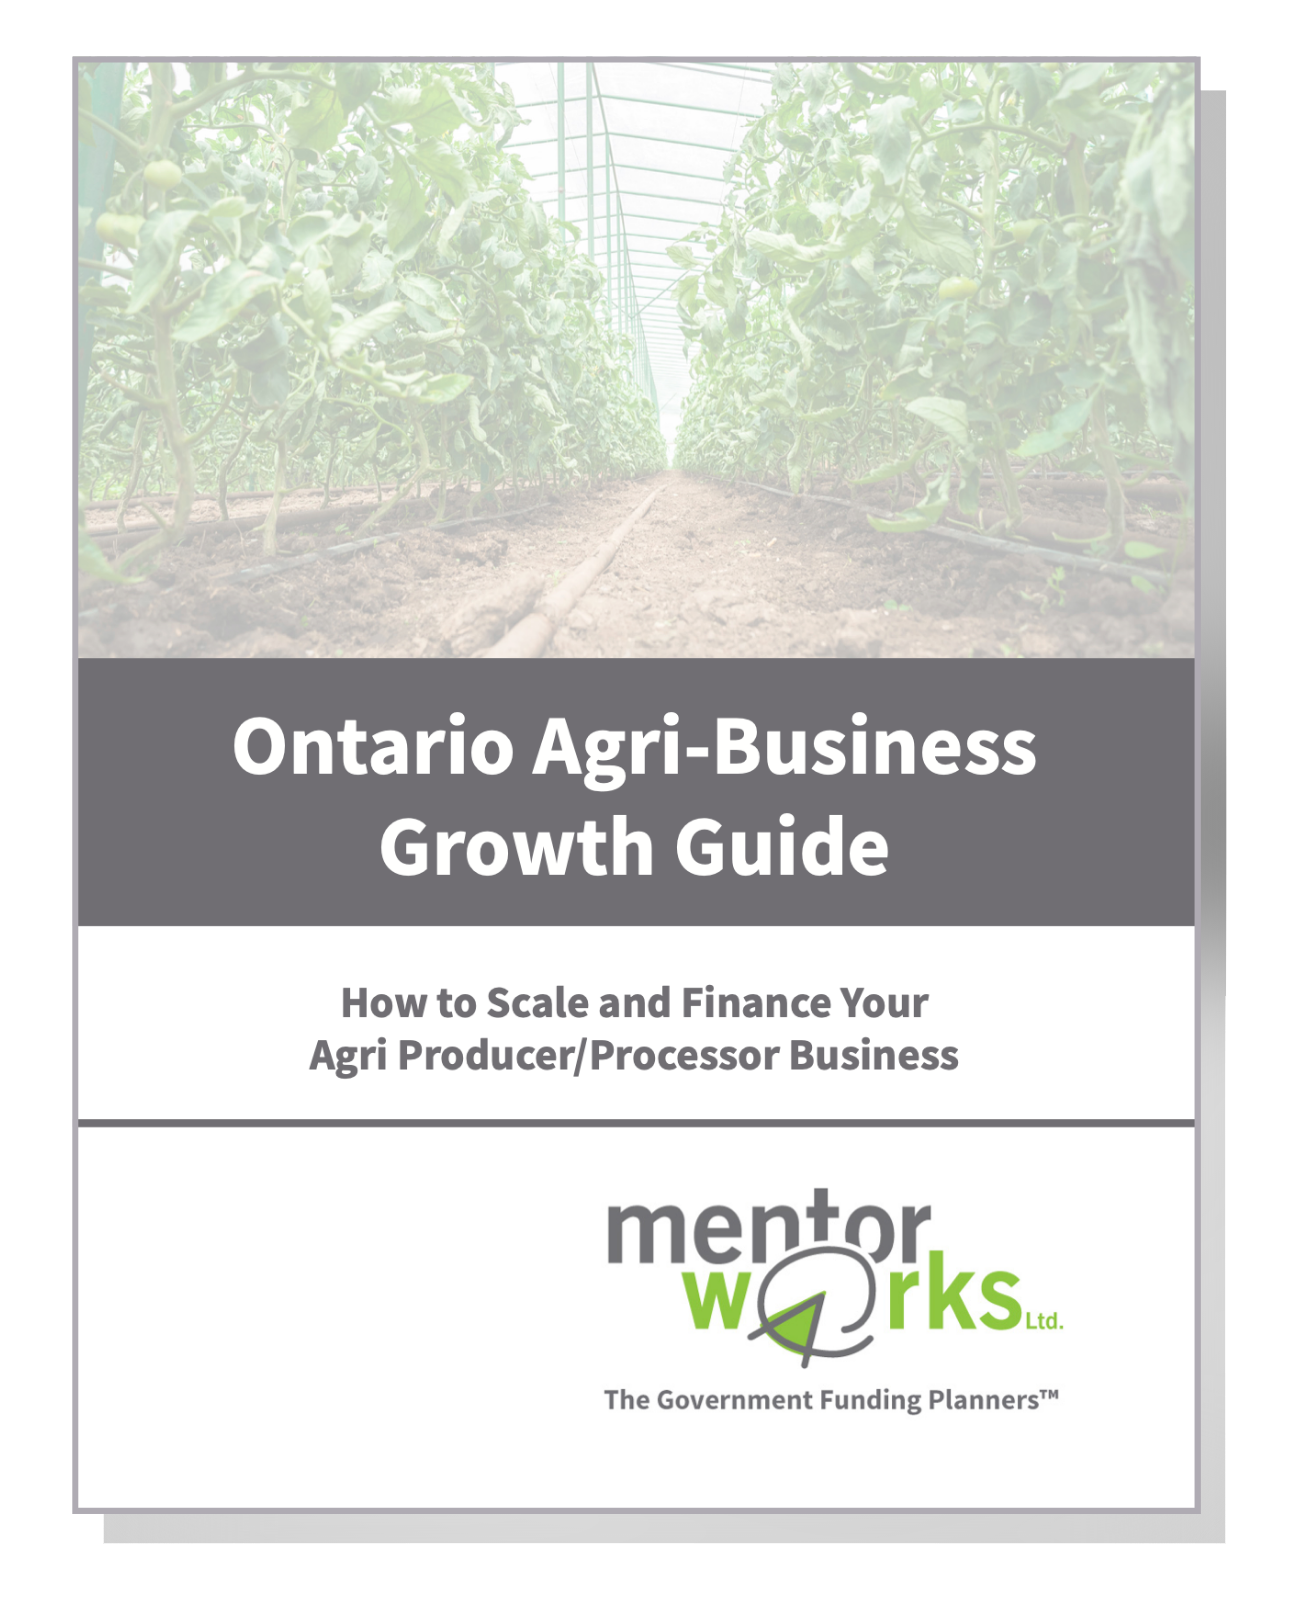 Ontario Agri Growth Business Guide Drop Shadow